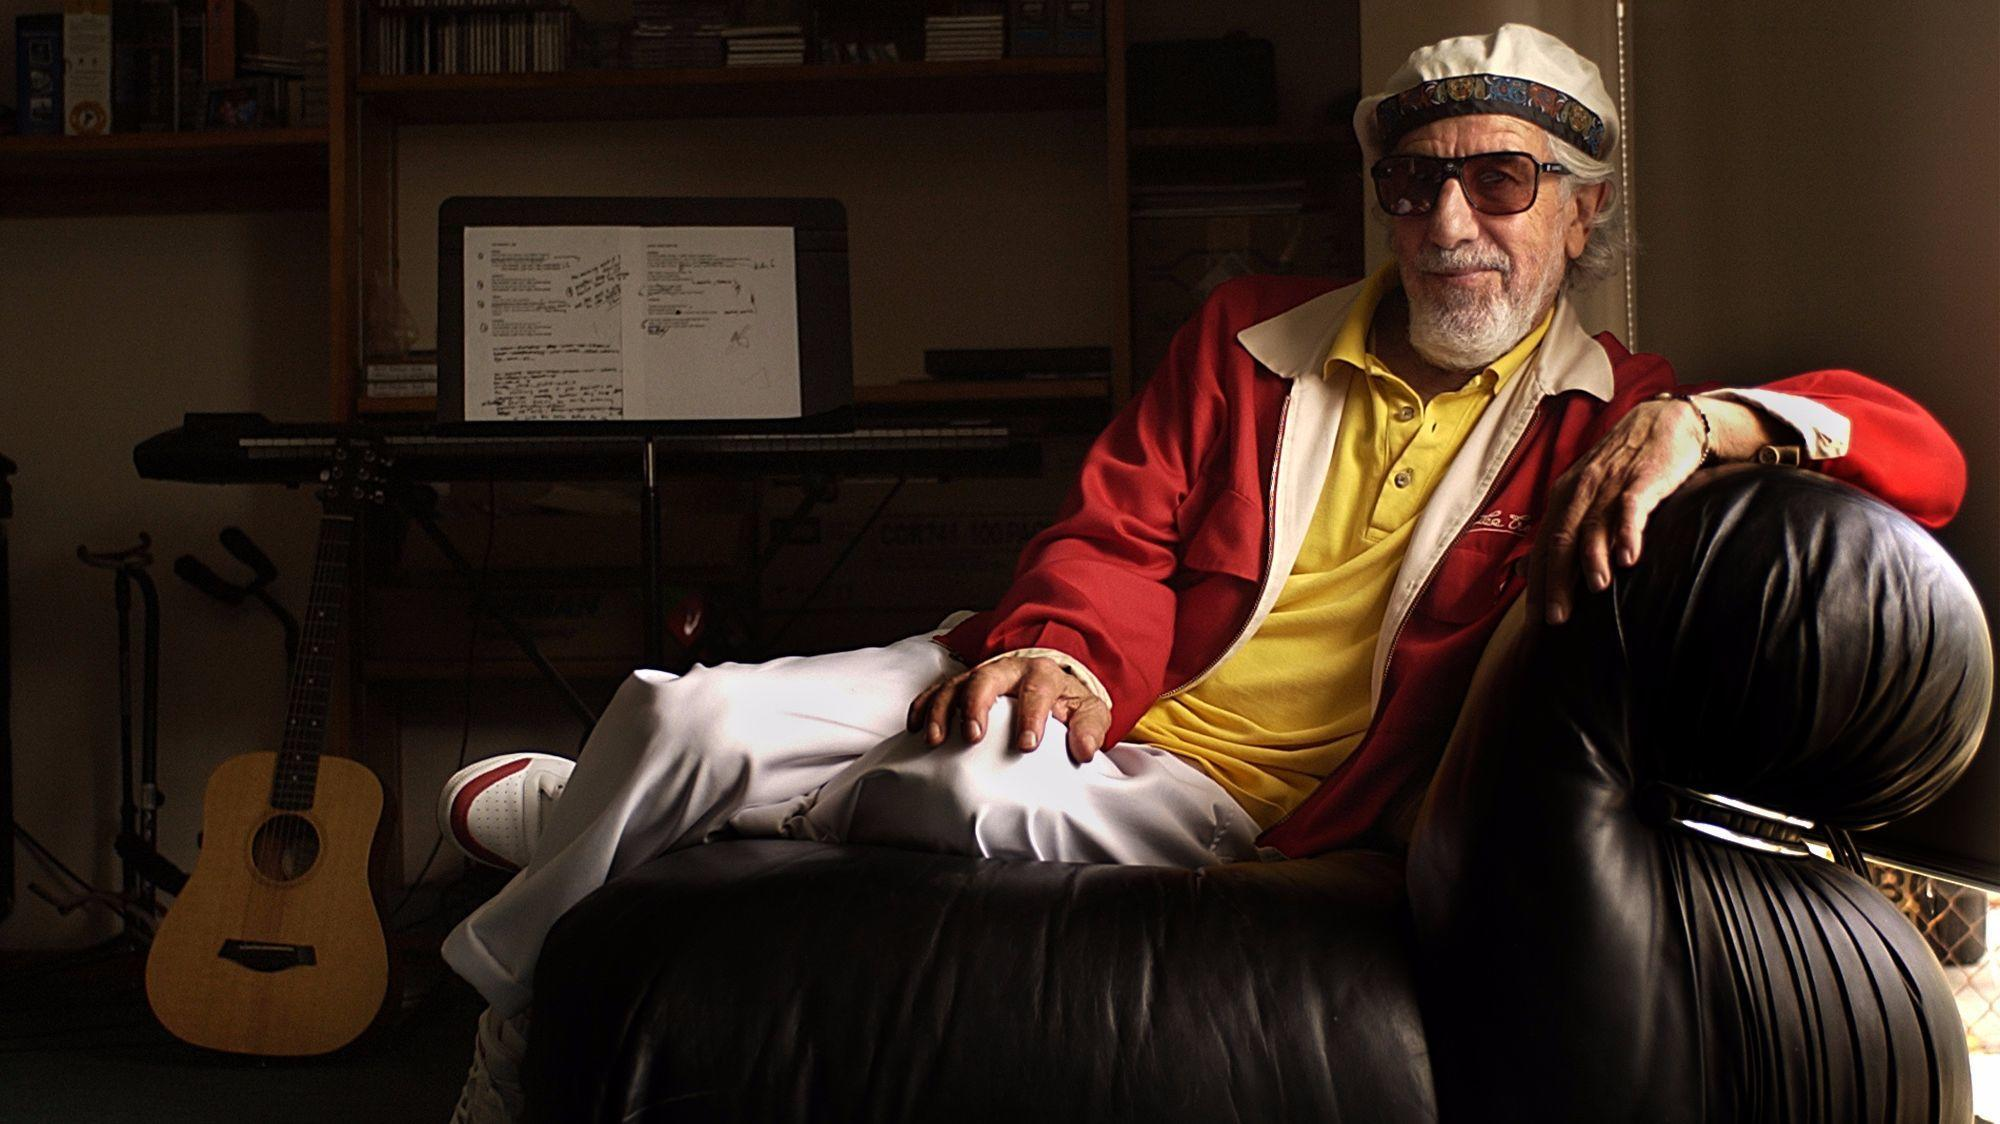 Lou Adler helped create Southern California pop culture in the 1960s, including surf and car music and folk rock. (Wally Skalij / Los Angeles Times)